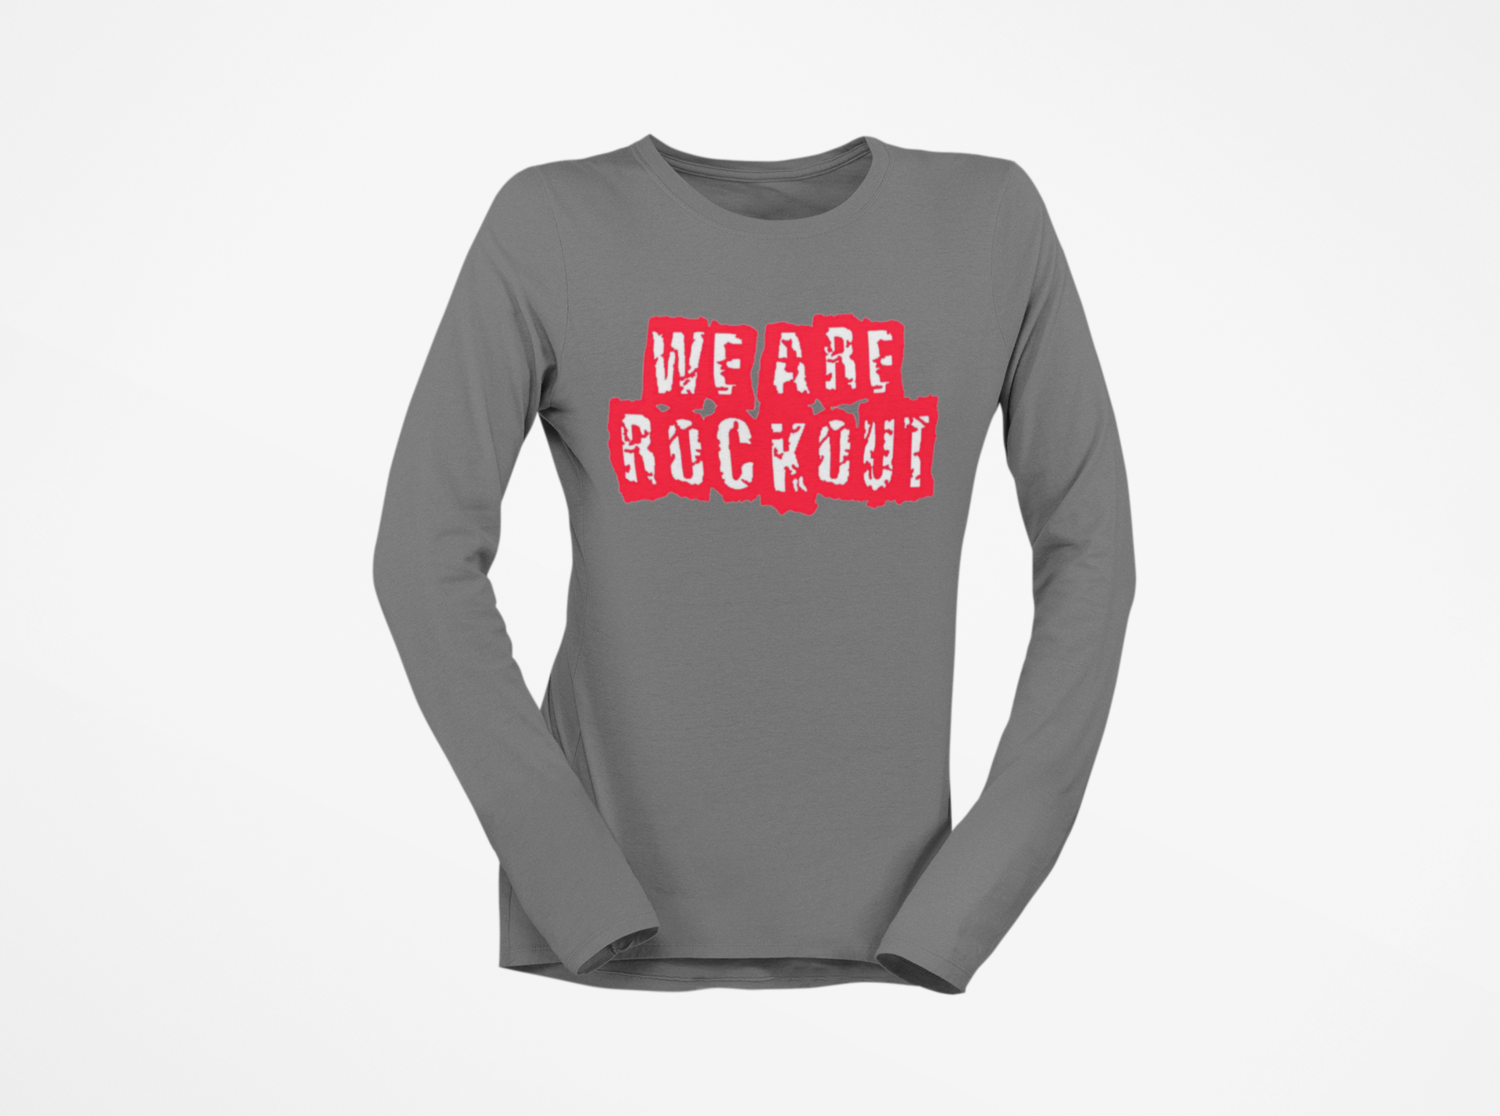 We Are ROCKOUT 2 Tone Long Sleeve T